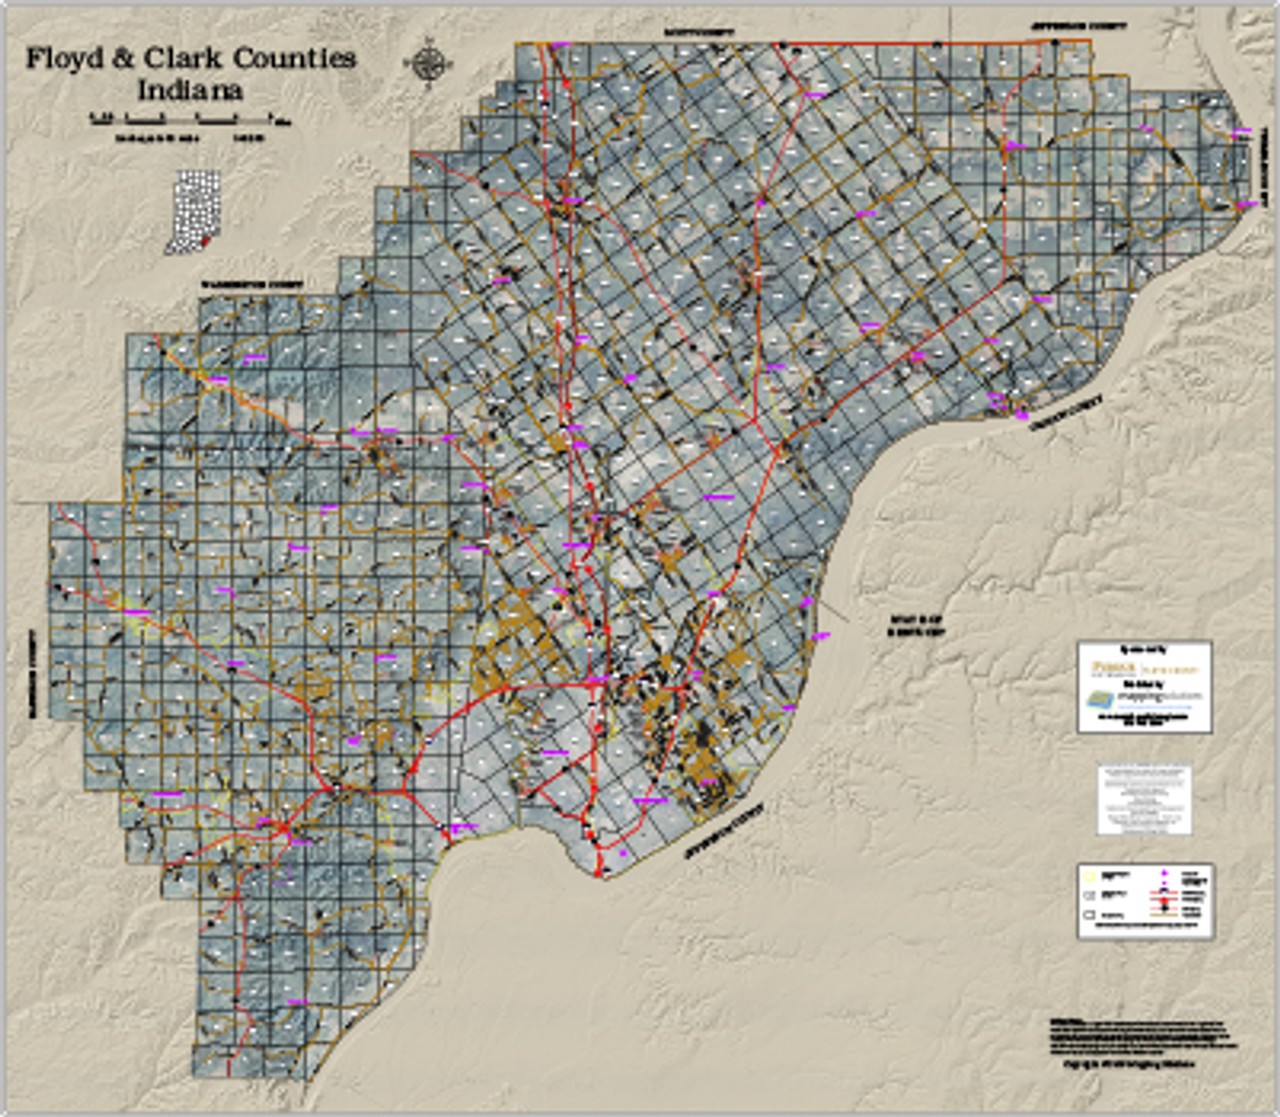 Floyd-Clark Counties Indiana 2018 Aerial Wall Map on database mapping, topographic mapping, community development mapping, technology mapping, gps mapping, internet mapping, network mapping, landscape architecture mapping, spatial mapping, geo mapping, data mapping, training mapping, web mapping, invasive species mapping, communication mapping, environmental mapping, land suitability mapping, geospatial mapping,